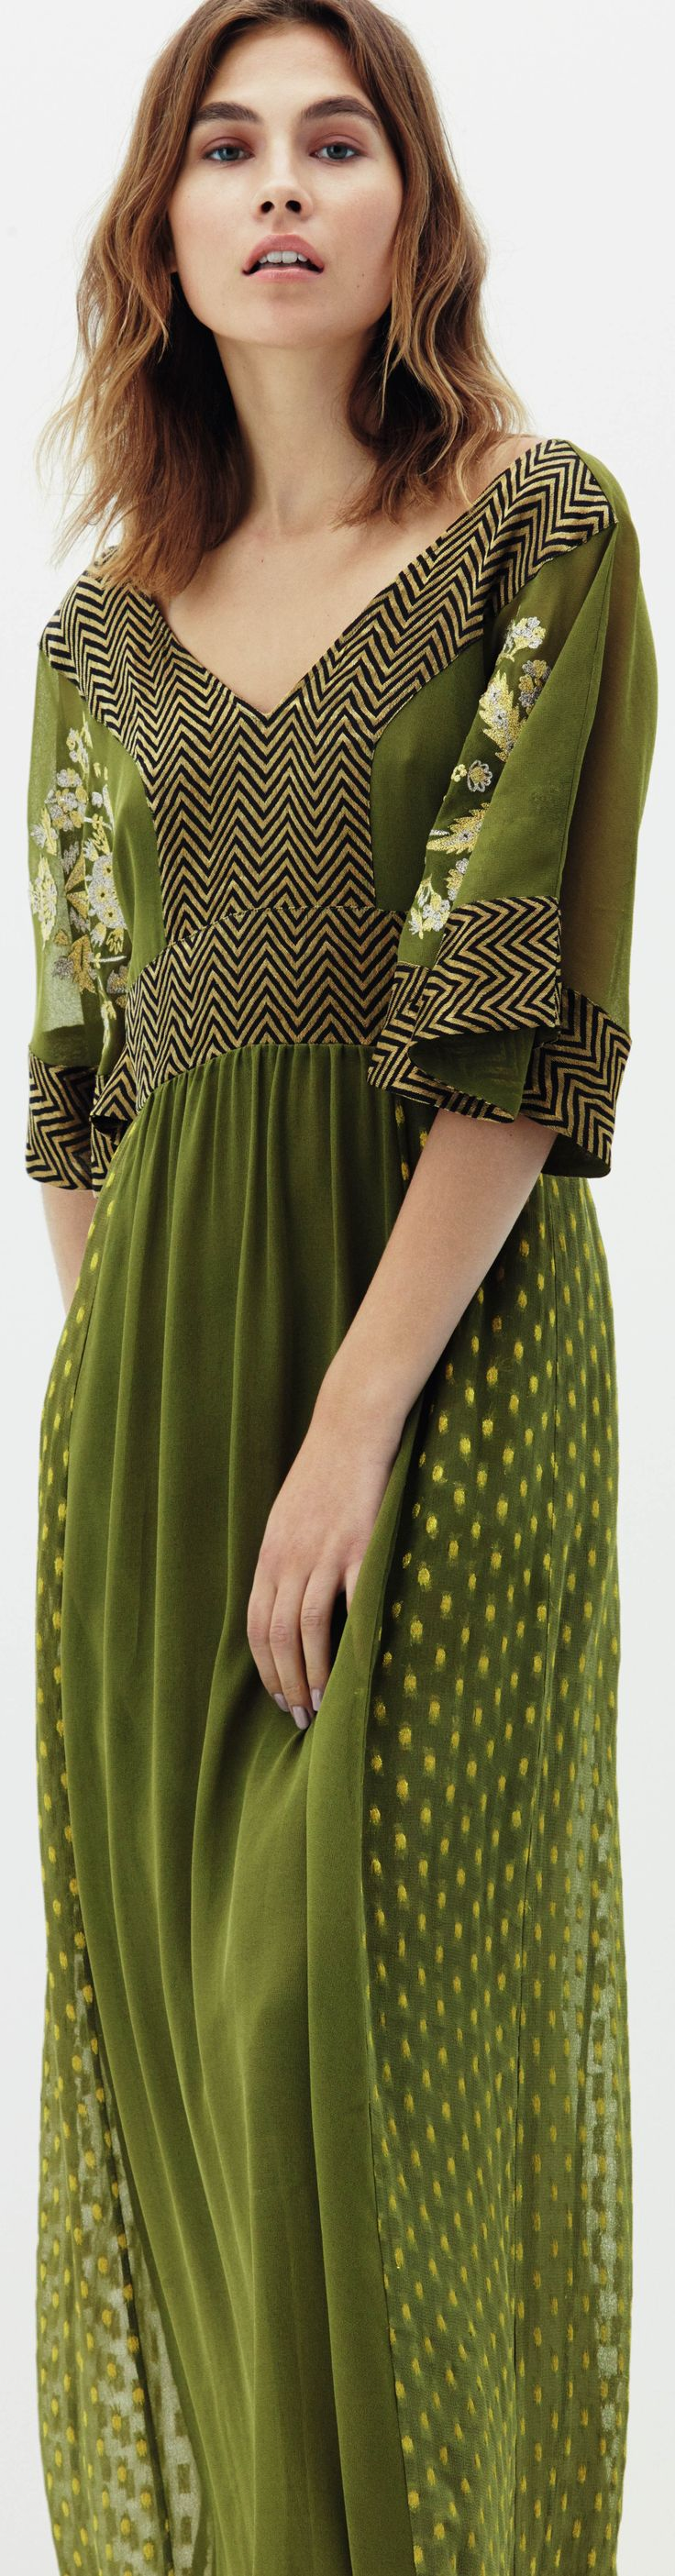 I'm grooving on this green dress for spring 2016. It's already on my wishlist. Read about fashion and more: http://www.boomerinas.com/2015/11/26/overcoming-writers-block-fashion-ennui-12-steps-to-cheer-up-older-women/